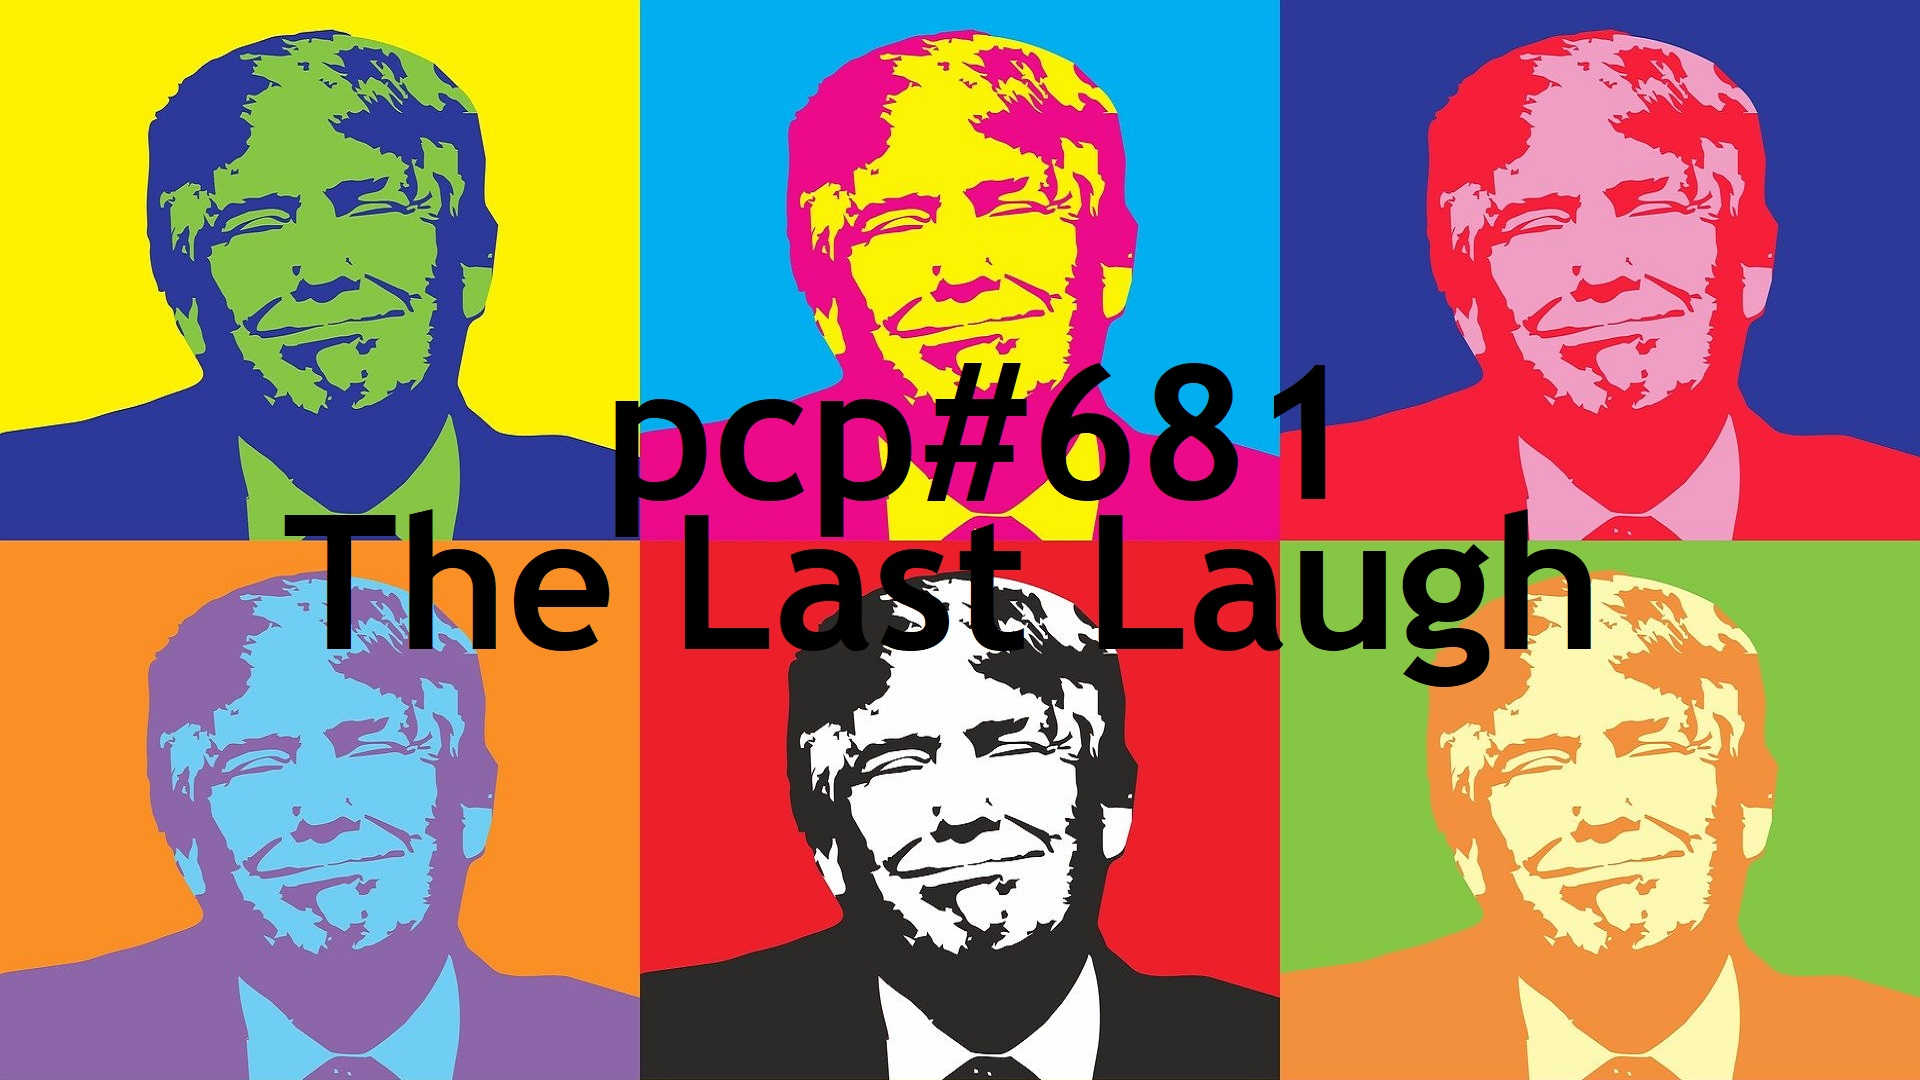 PCP#681... The Last Laugh....